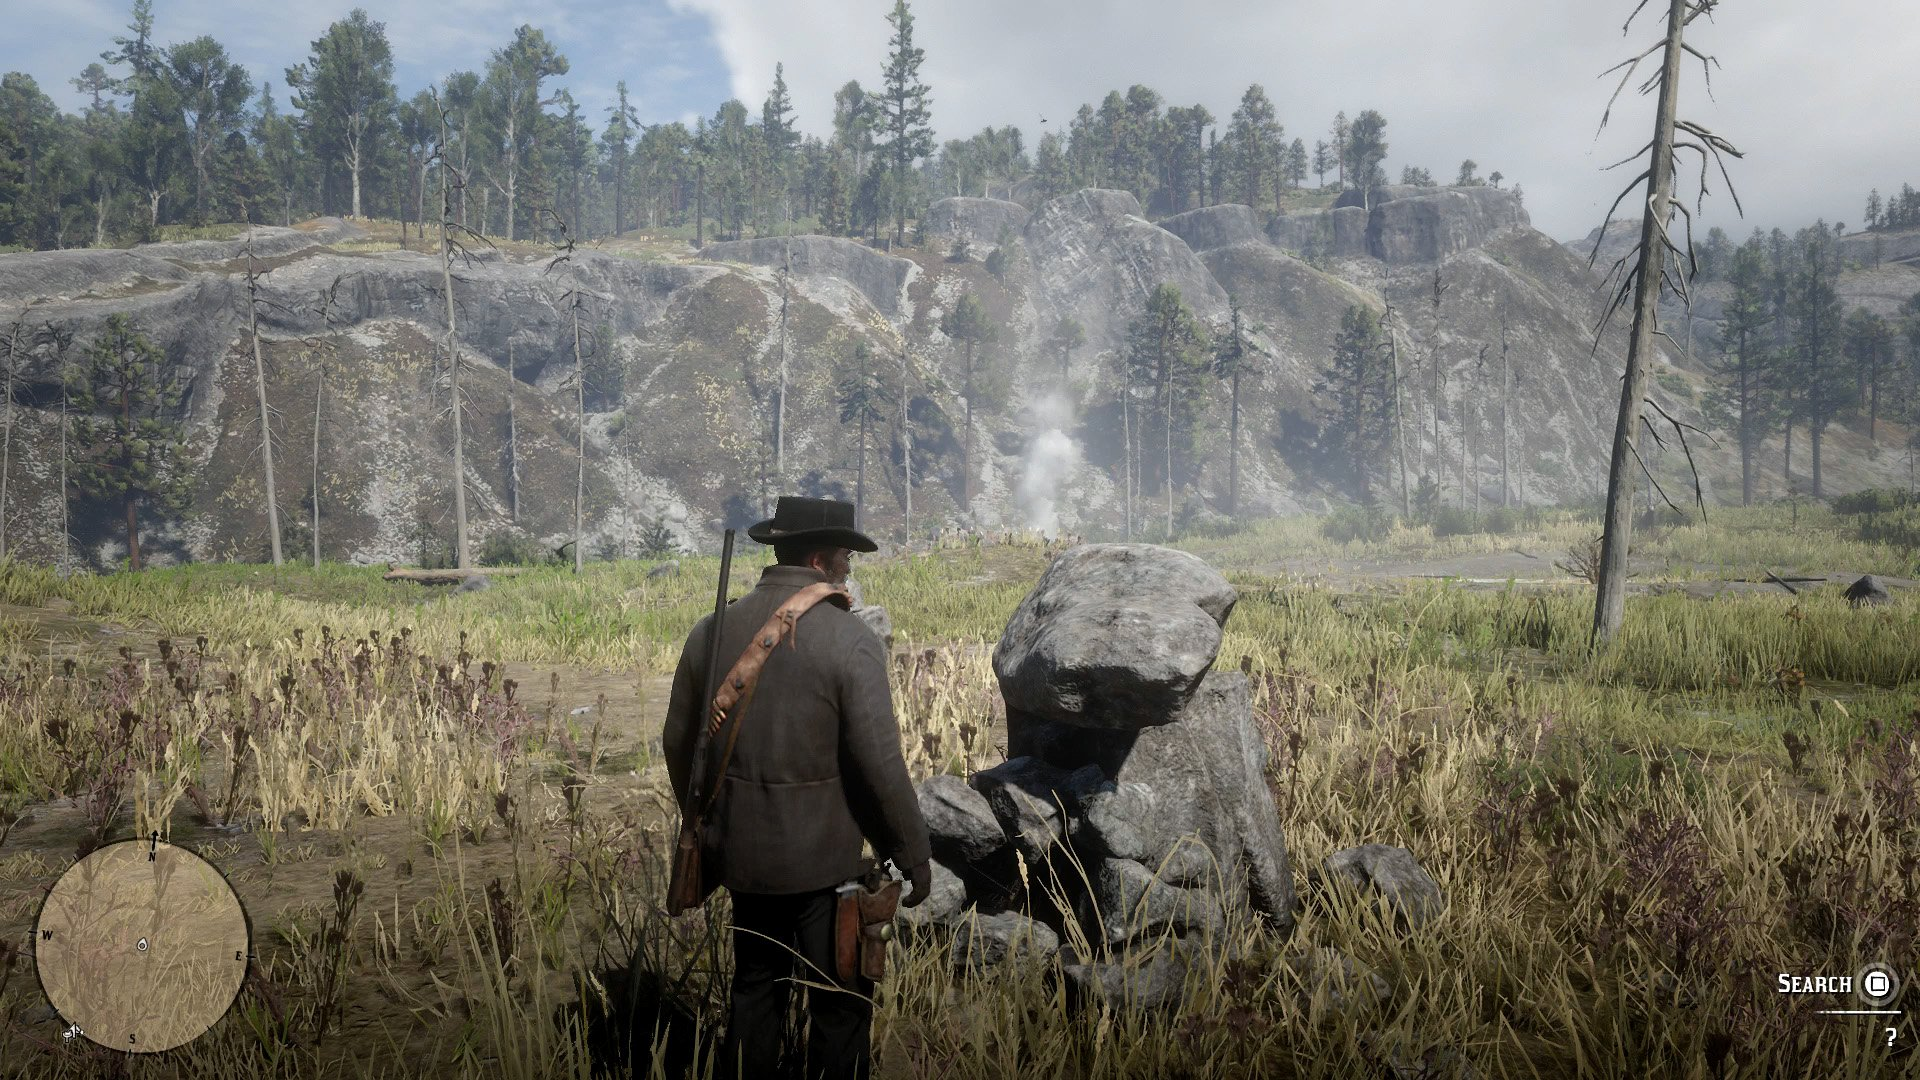 Red Dead Redemption 2 Achieves Biggest Opening Weekend in Entertainment History